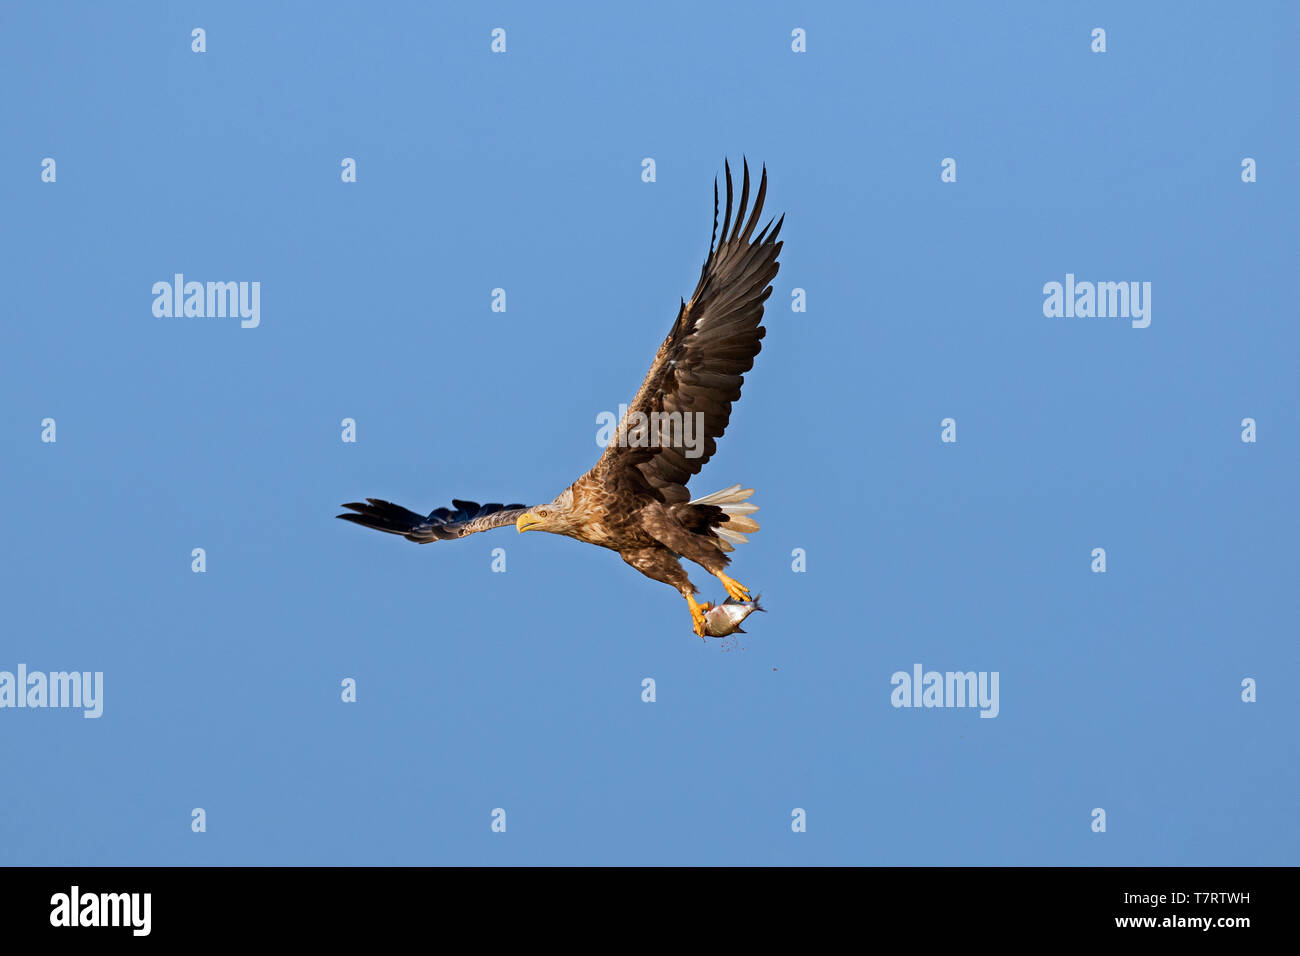 White-tailed eagle / sea eagle / erne (Haliaeetus albicilla) in flight with caught fish from lake in its talons Stock Photo